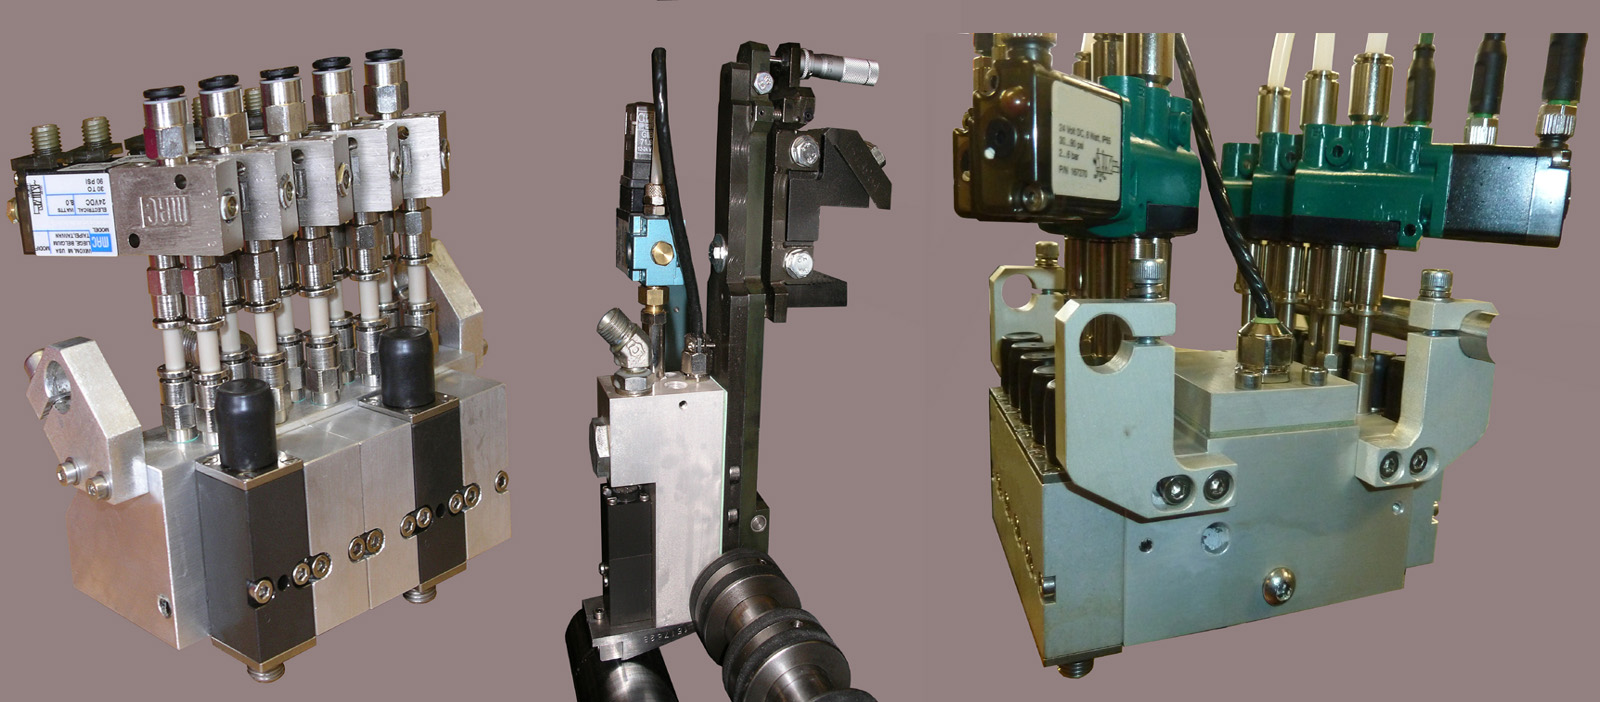 Design and Build Bespoke Hotmelt Glue Guns. Manufacturers of 'standard' guns